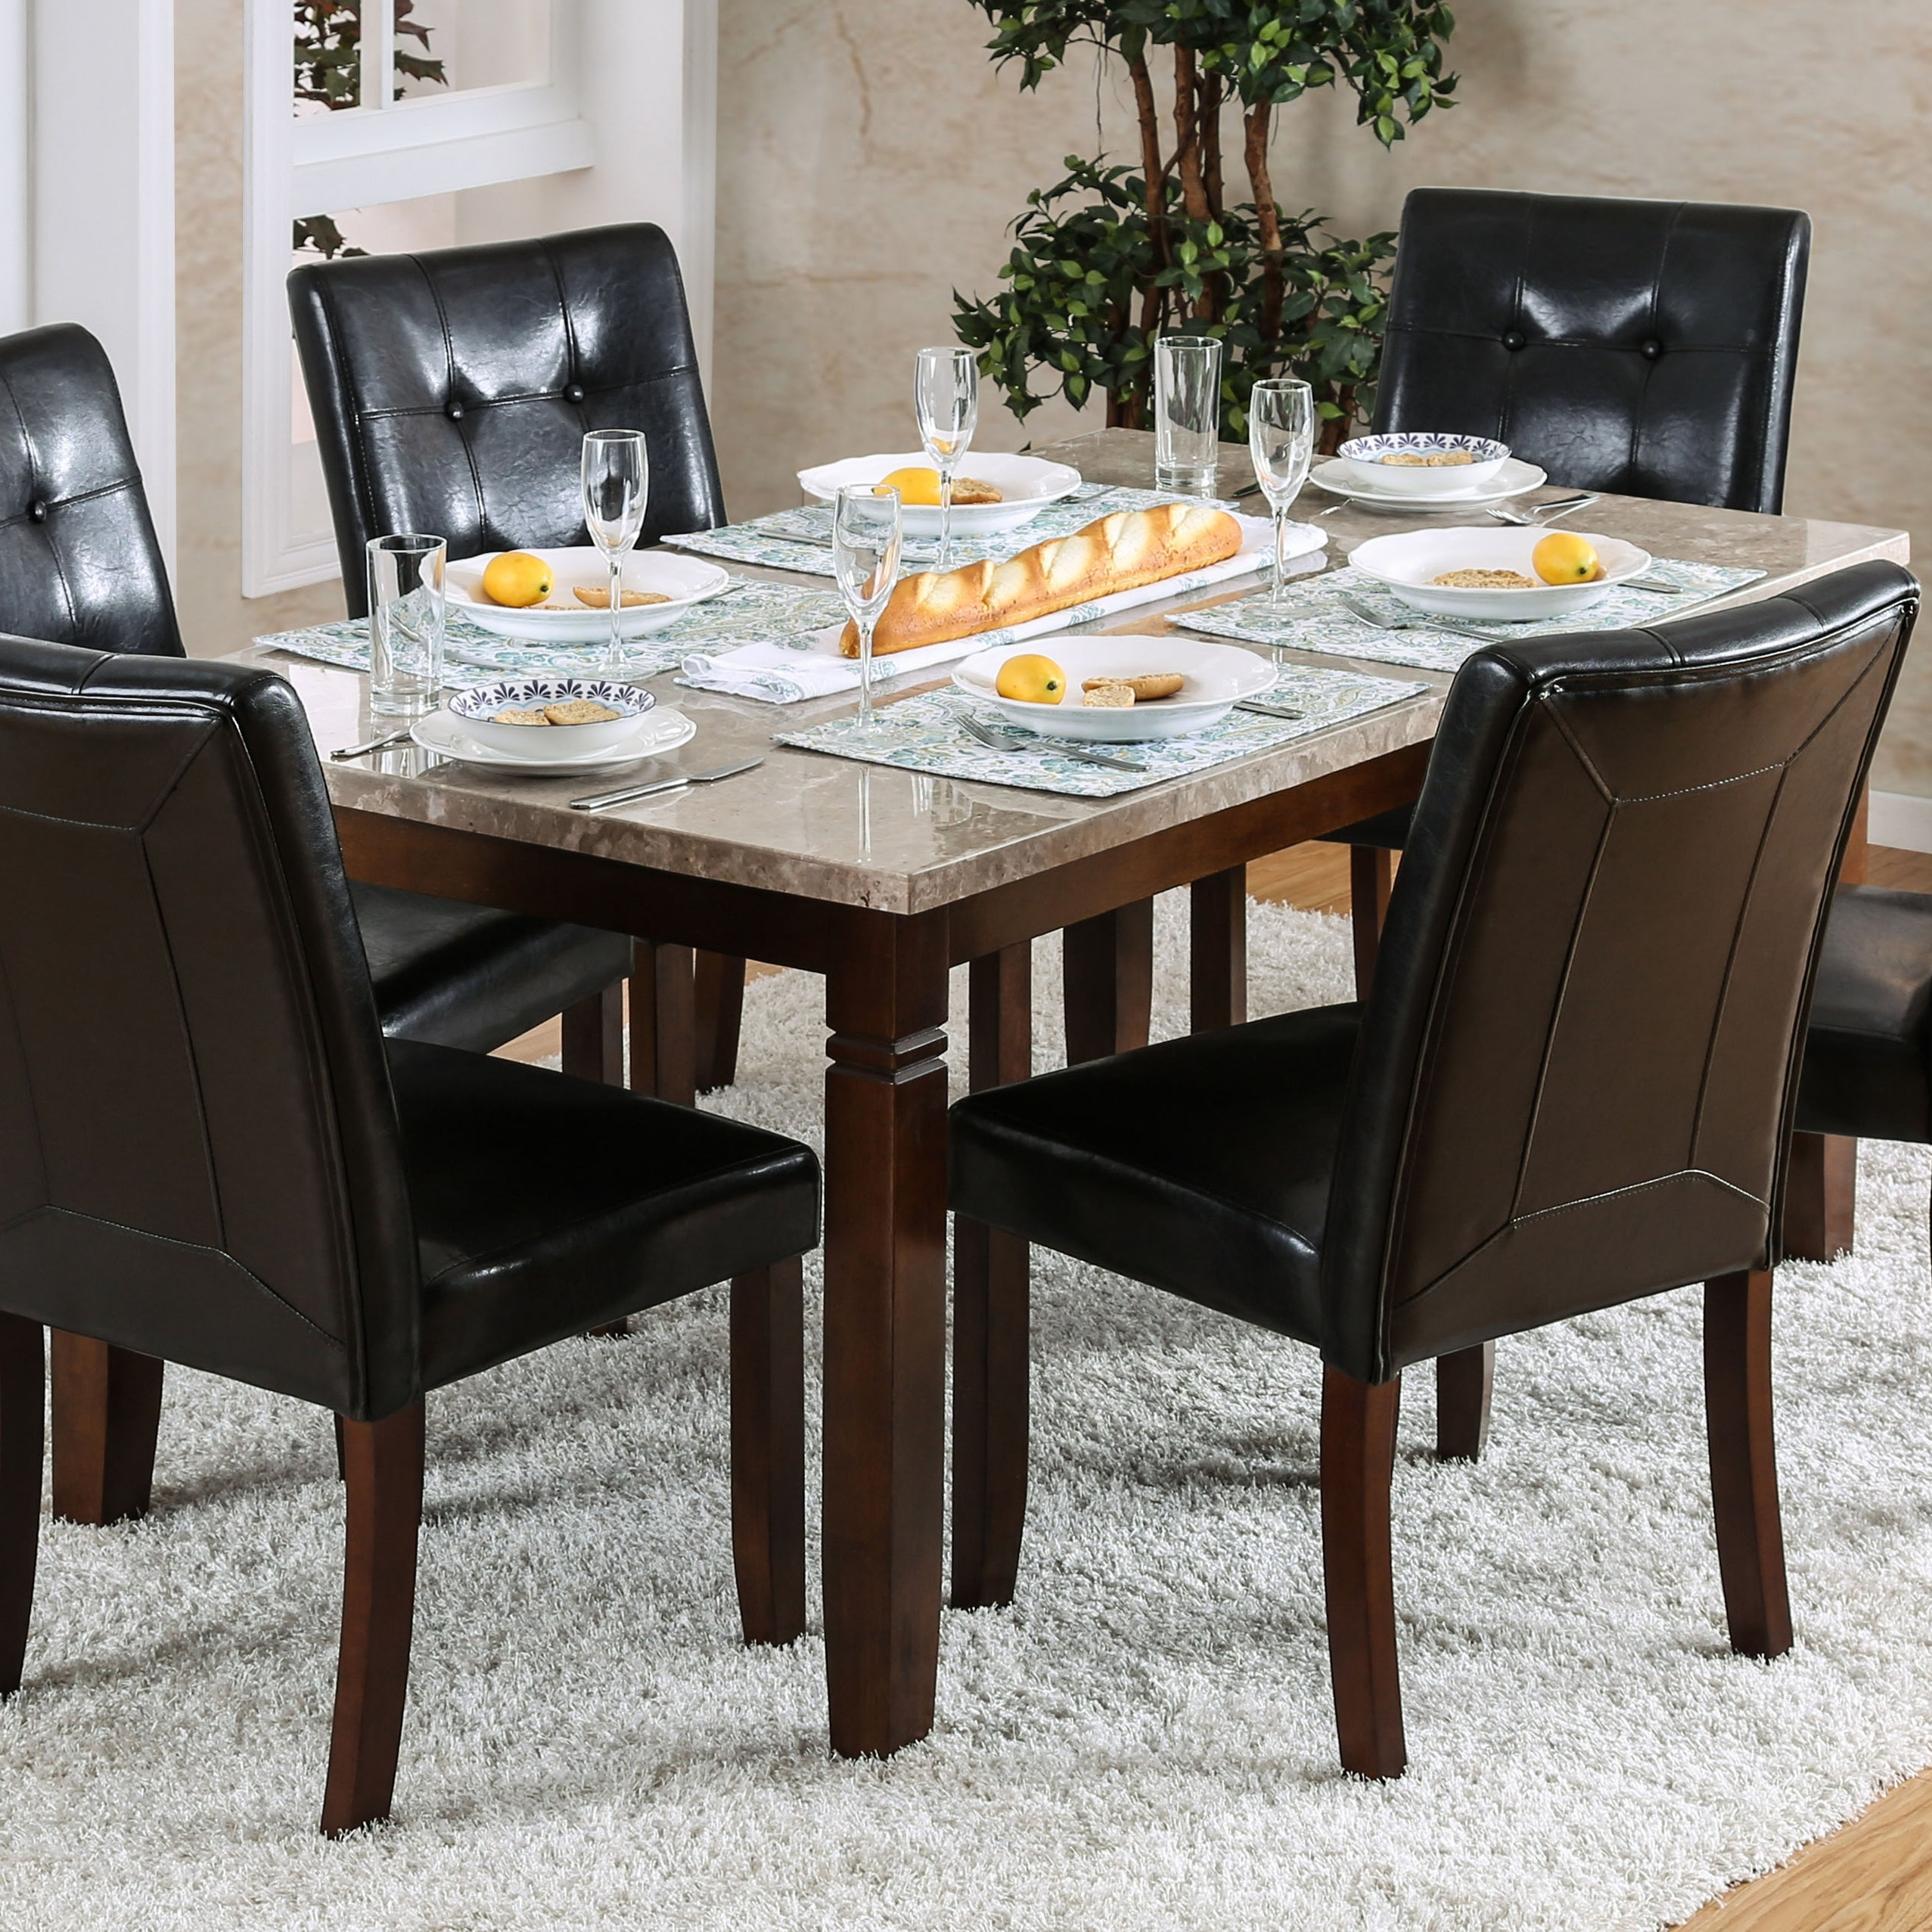 Red Barrel Studio Gibbons 7 Piece Dining Set | Wayfair For Most Recent Candice Ii 7 Piece Extension Rectangle Dining Sets (View 5 of 20)